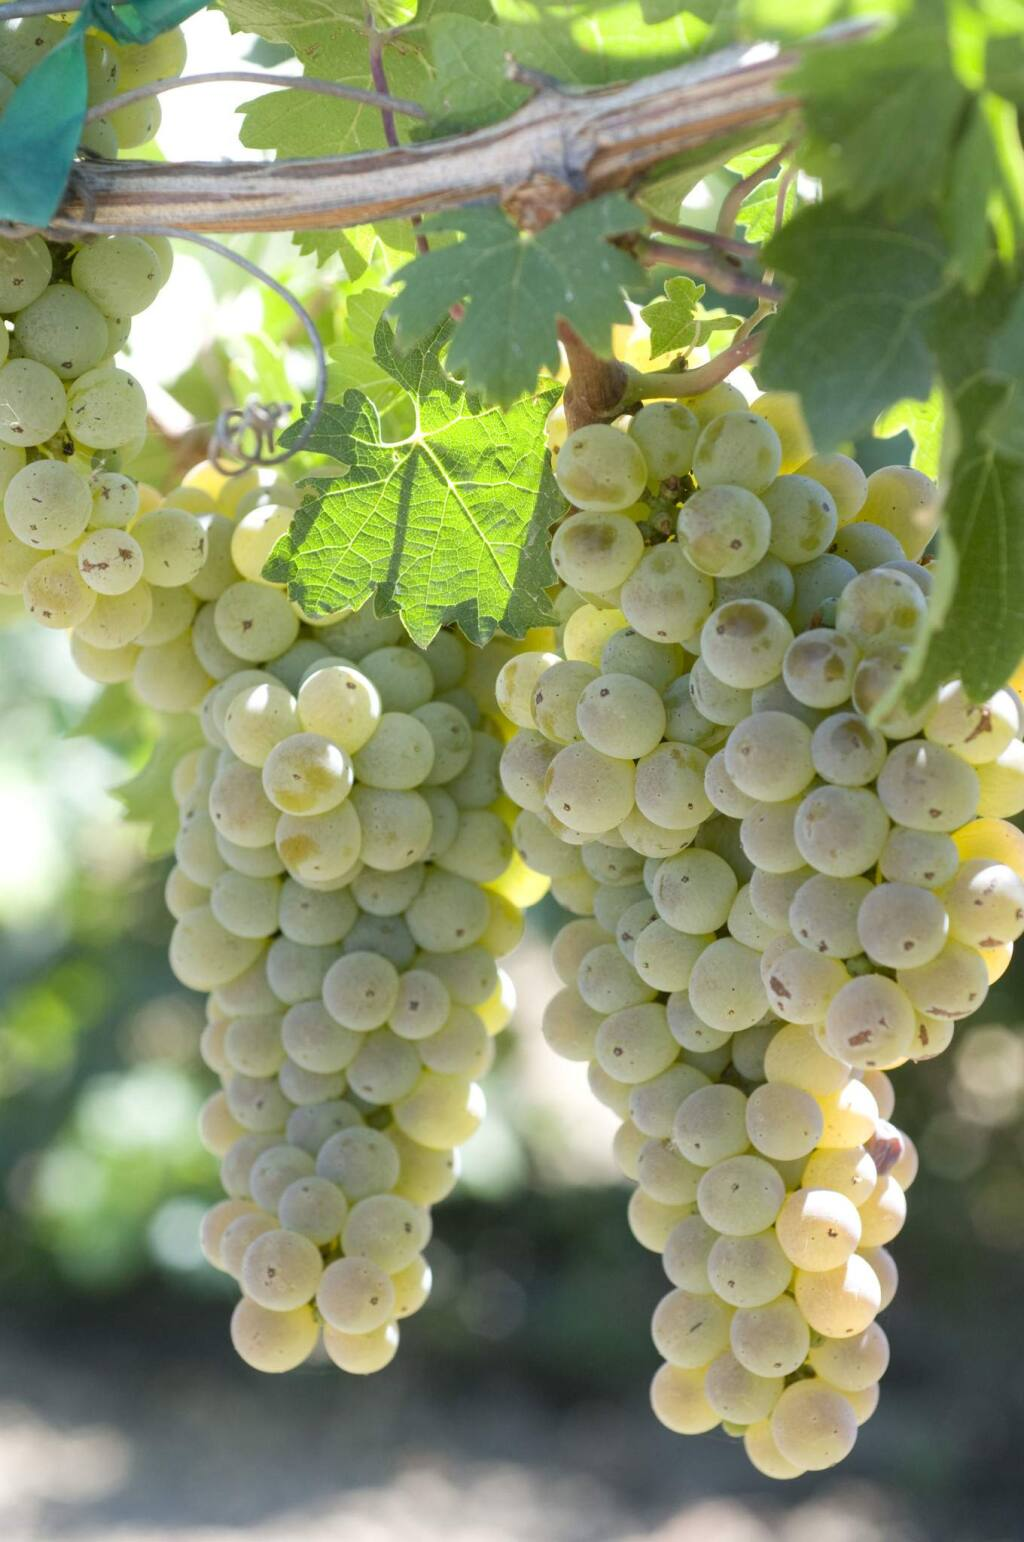 Caminante blanc, a Pierce's disease-resistant white grape variety released in late 2019, has characteristics of both sauvignon blanc and chardonnay, key grapes grown in Lake and Sonoma counties, respectively, for vintners. (photo by Dan Ng / University of California, Davis)